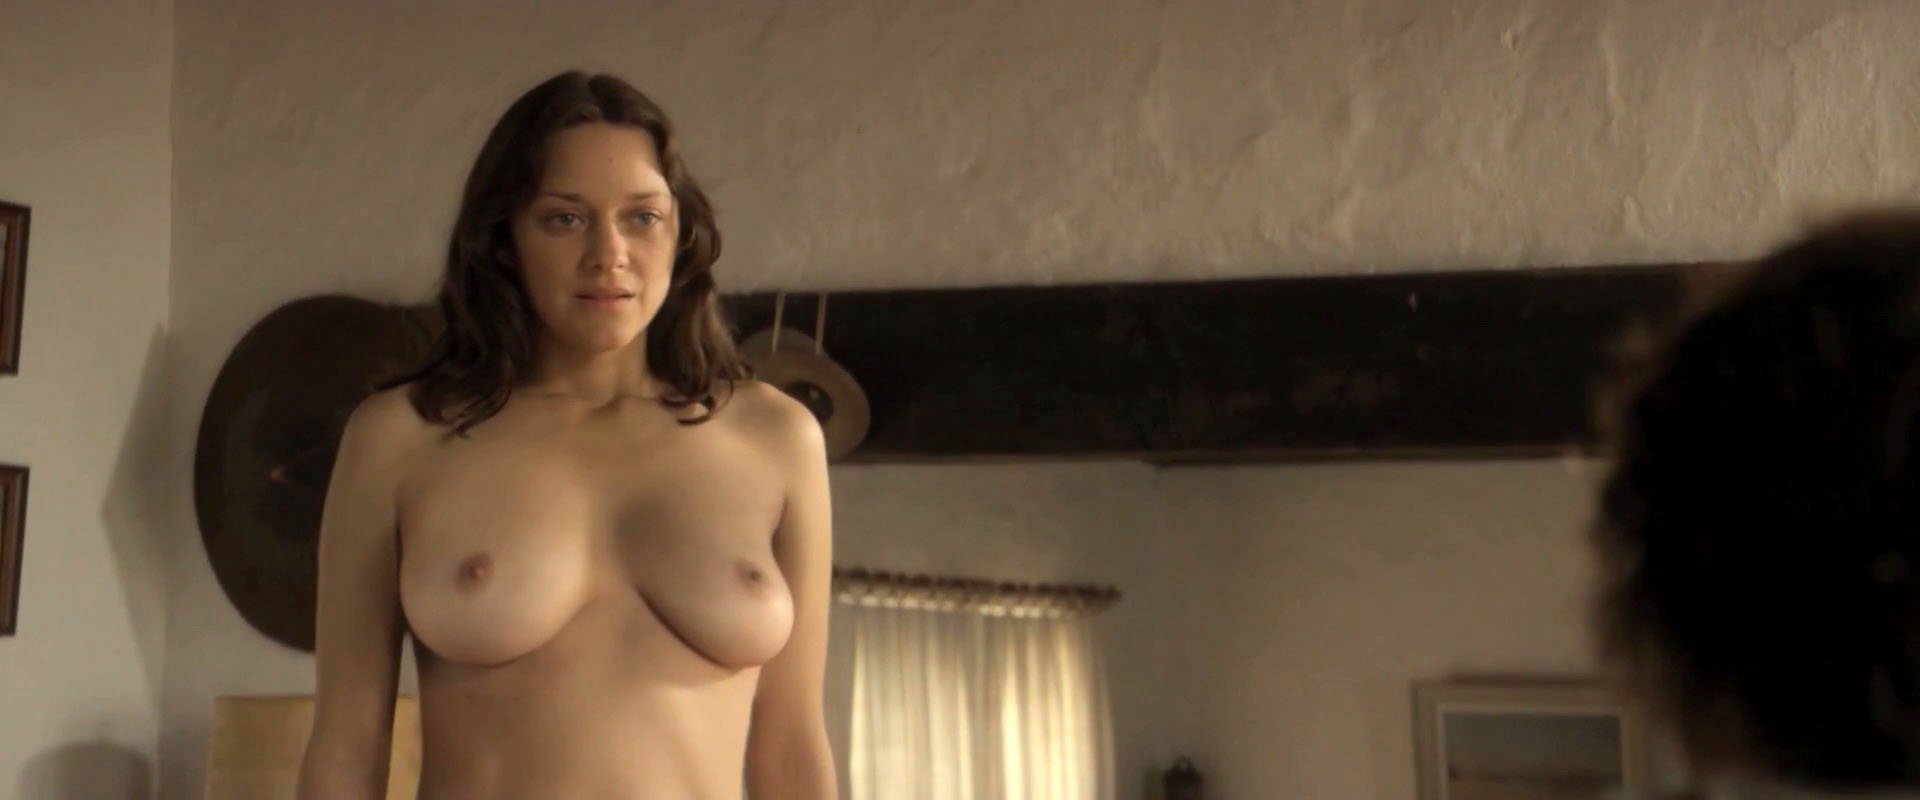 Marion game french actress scenes de menages - 1 part 2